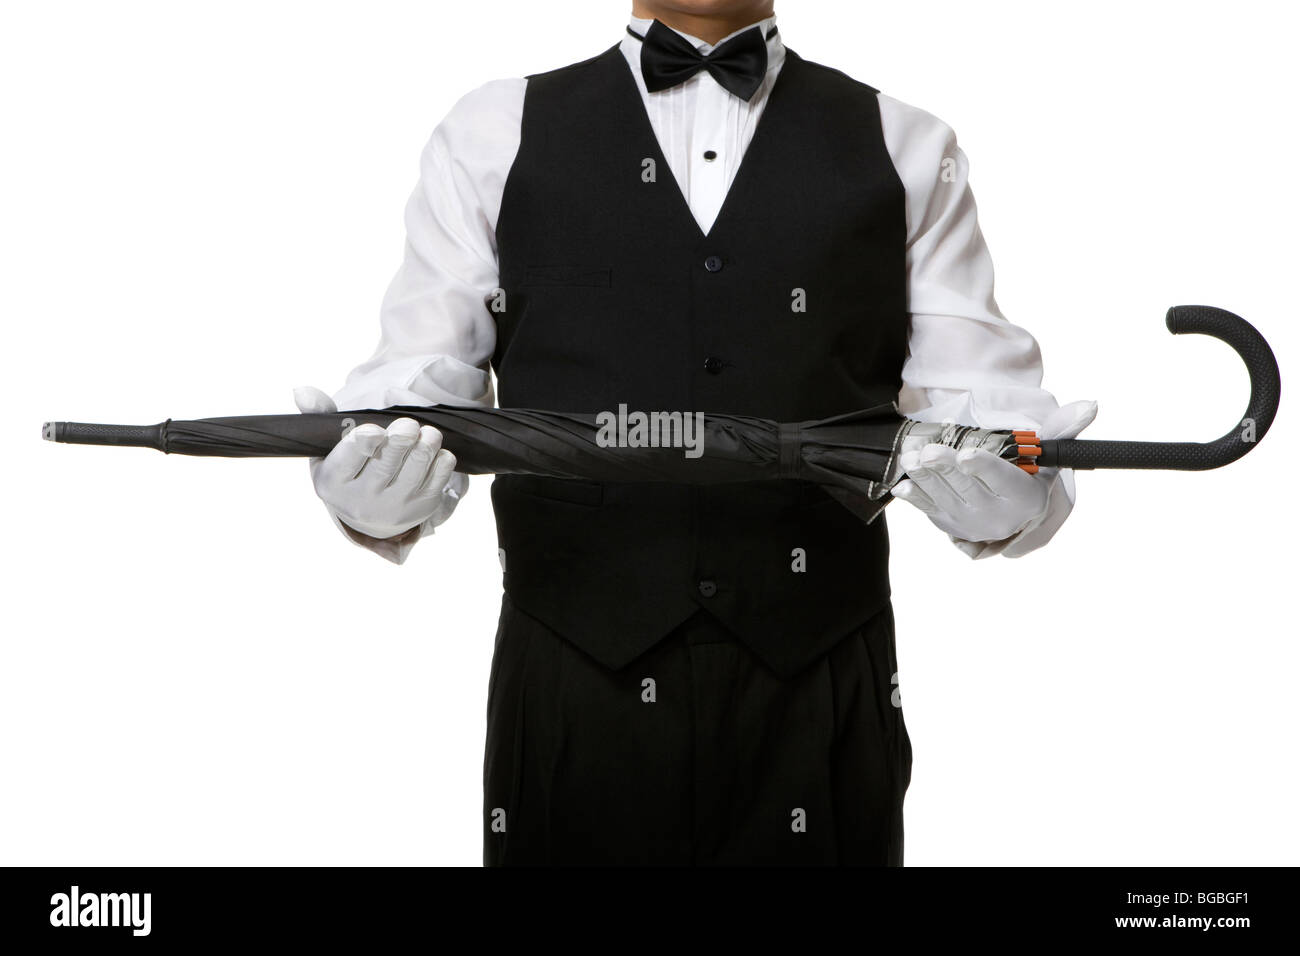 Hotel Doorman - Stock Image